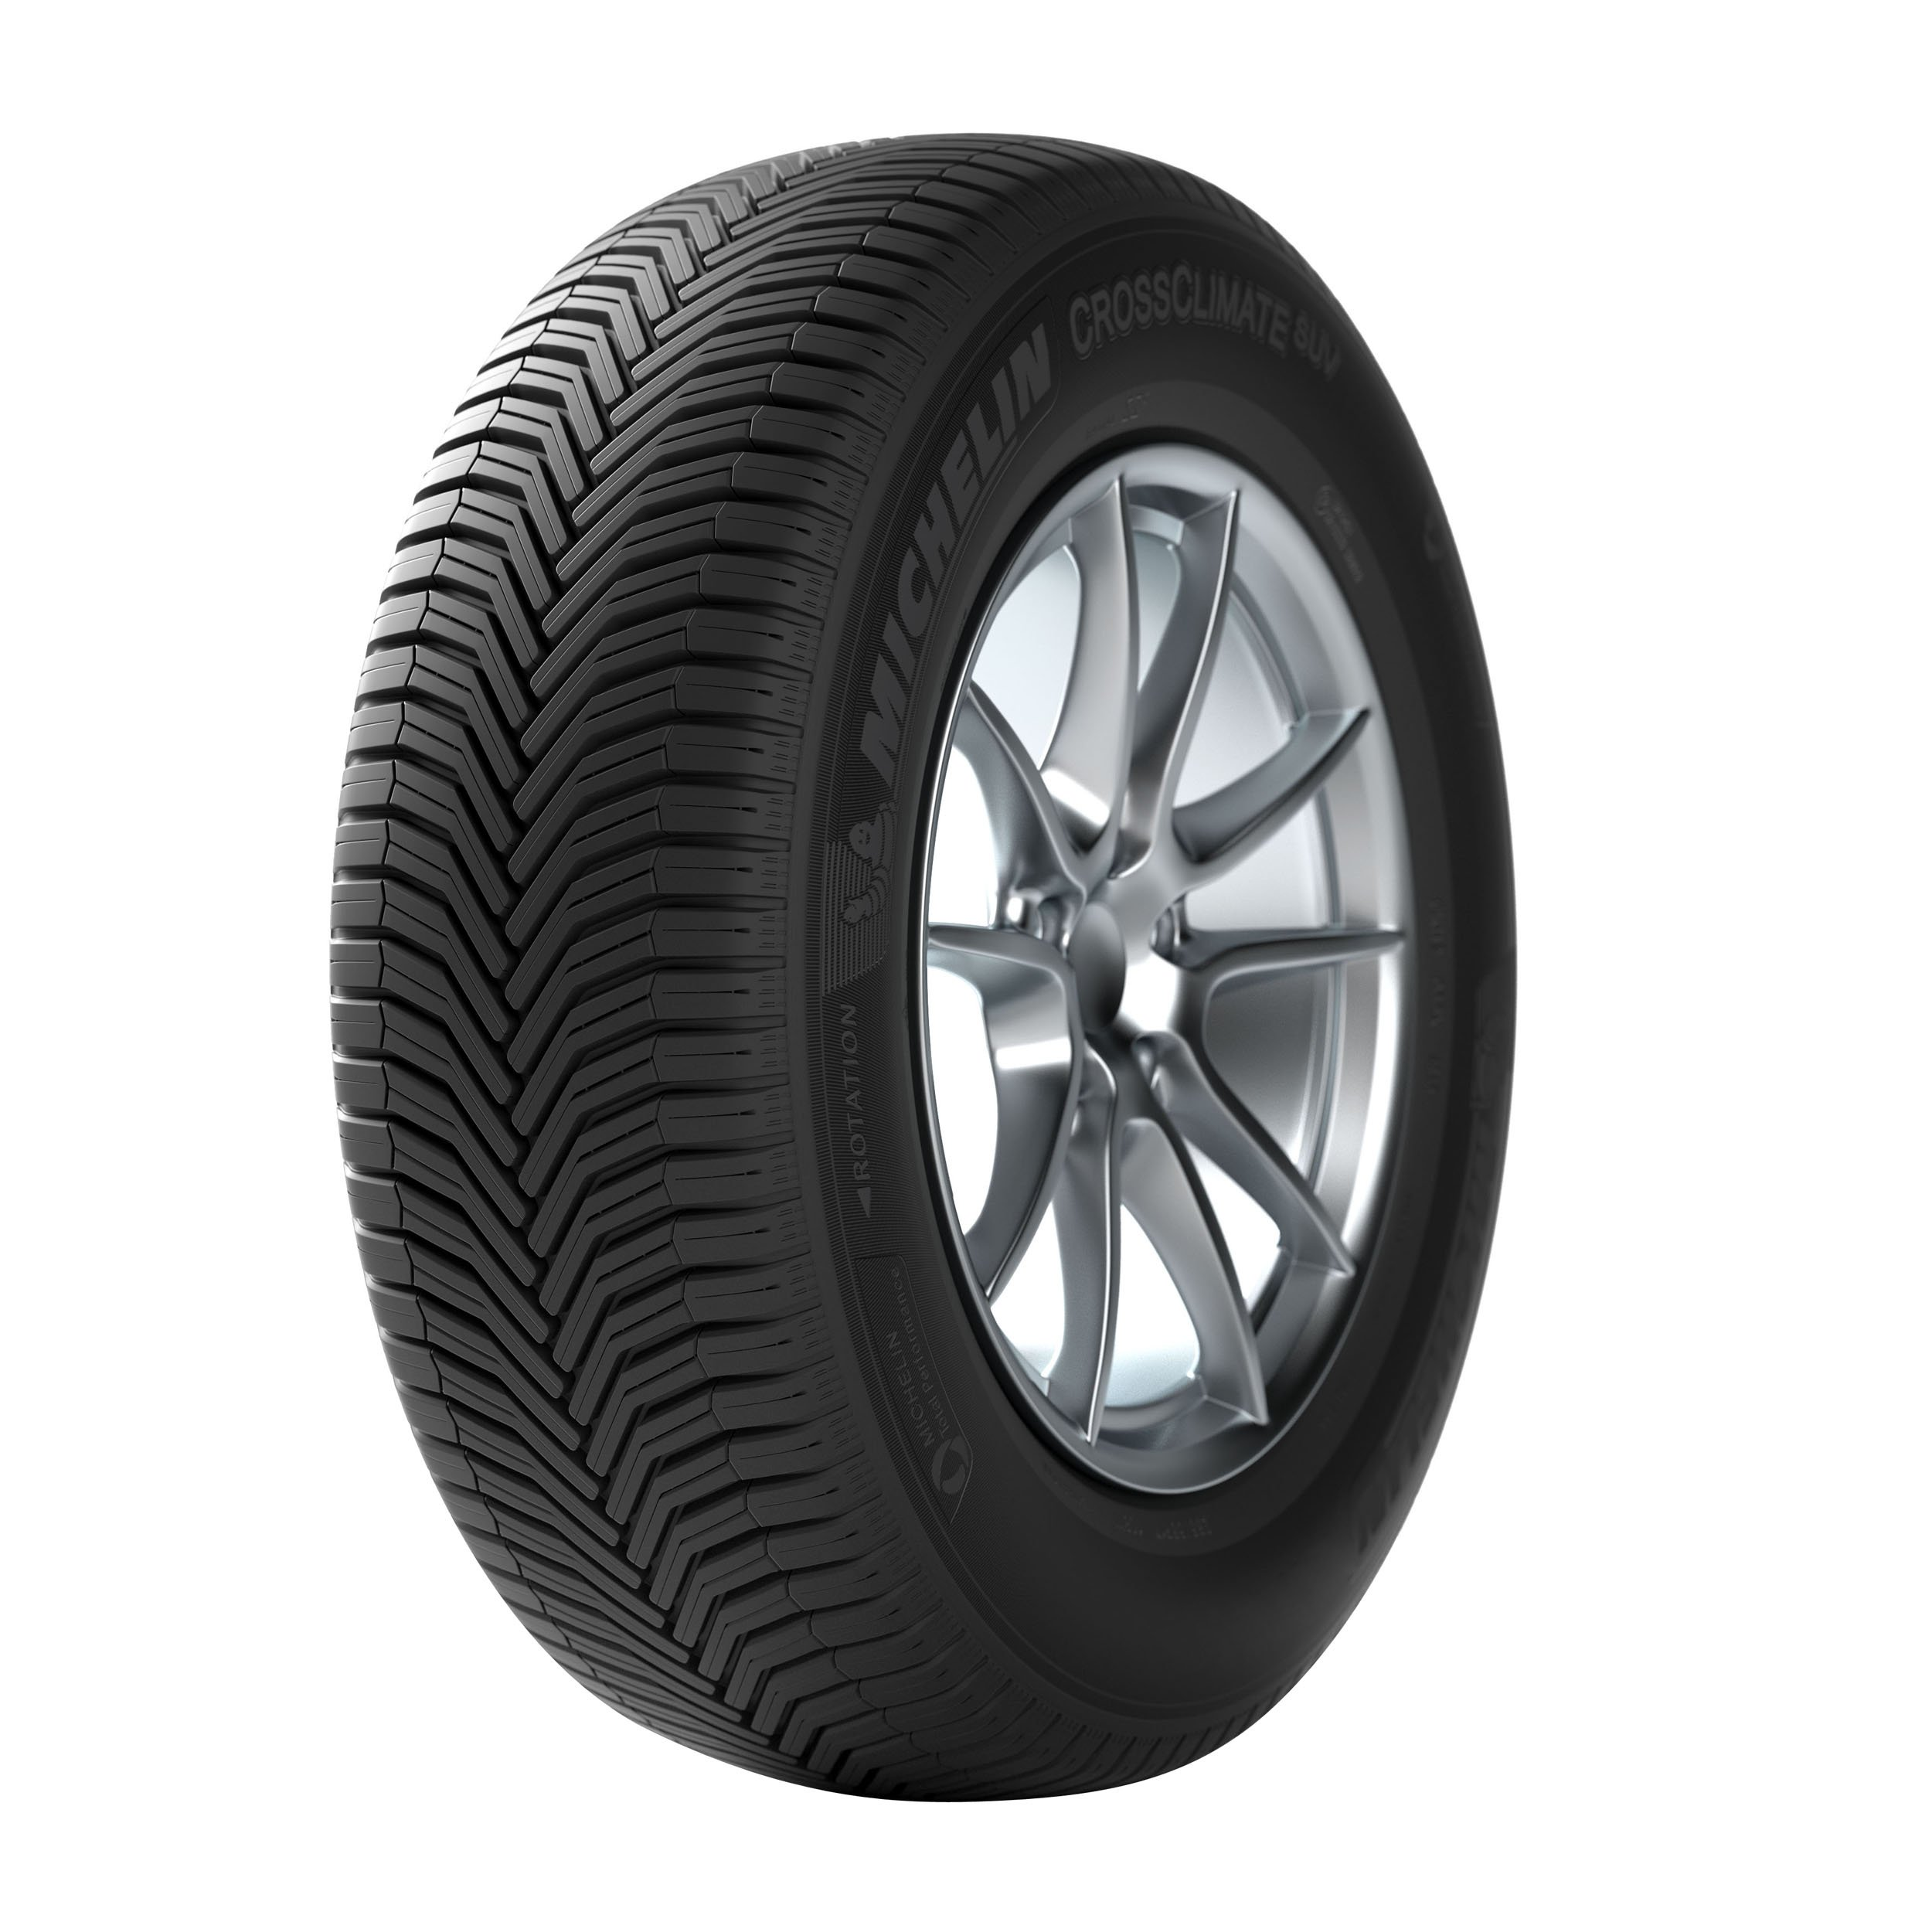 Michelin Crossclimate SUV XL 265/45 R20 108Y off road, 4x4, suv nyári gumi